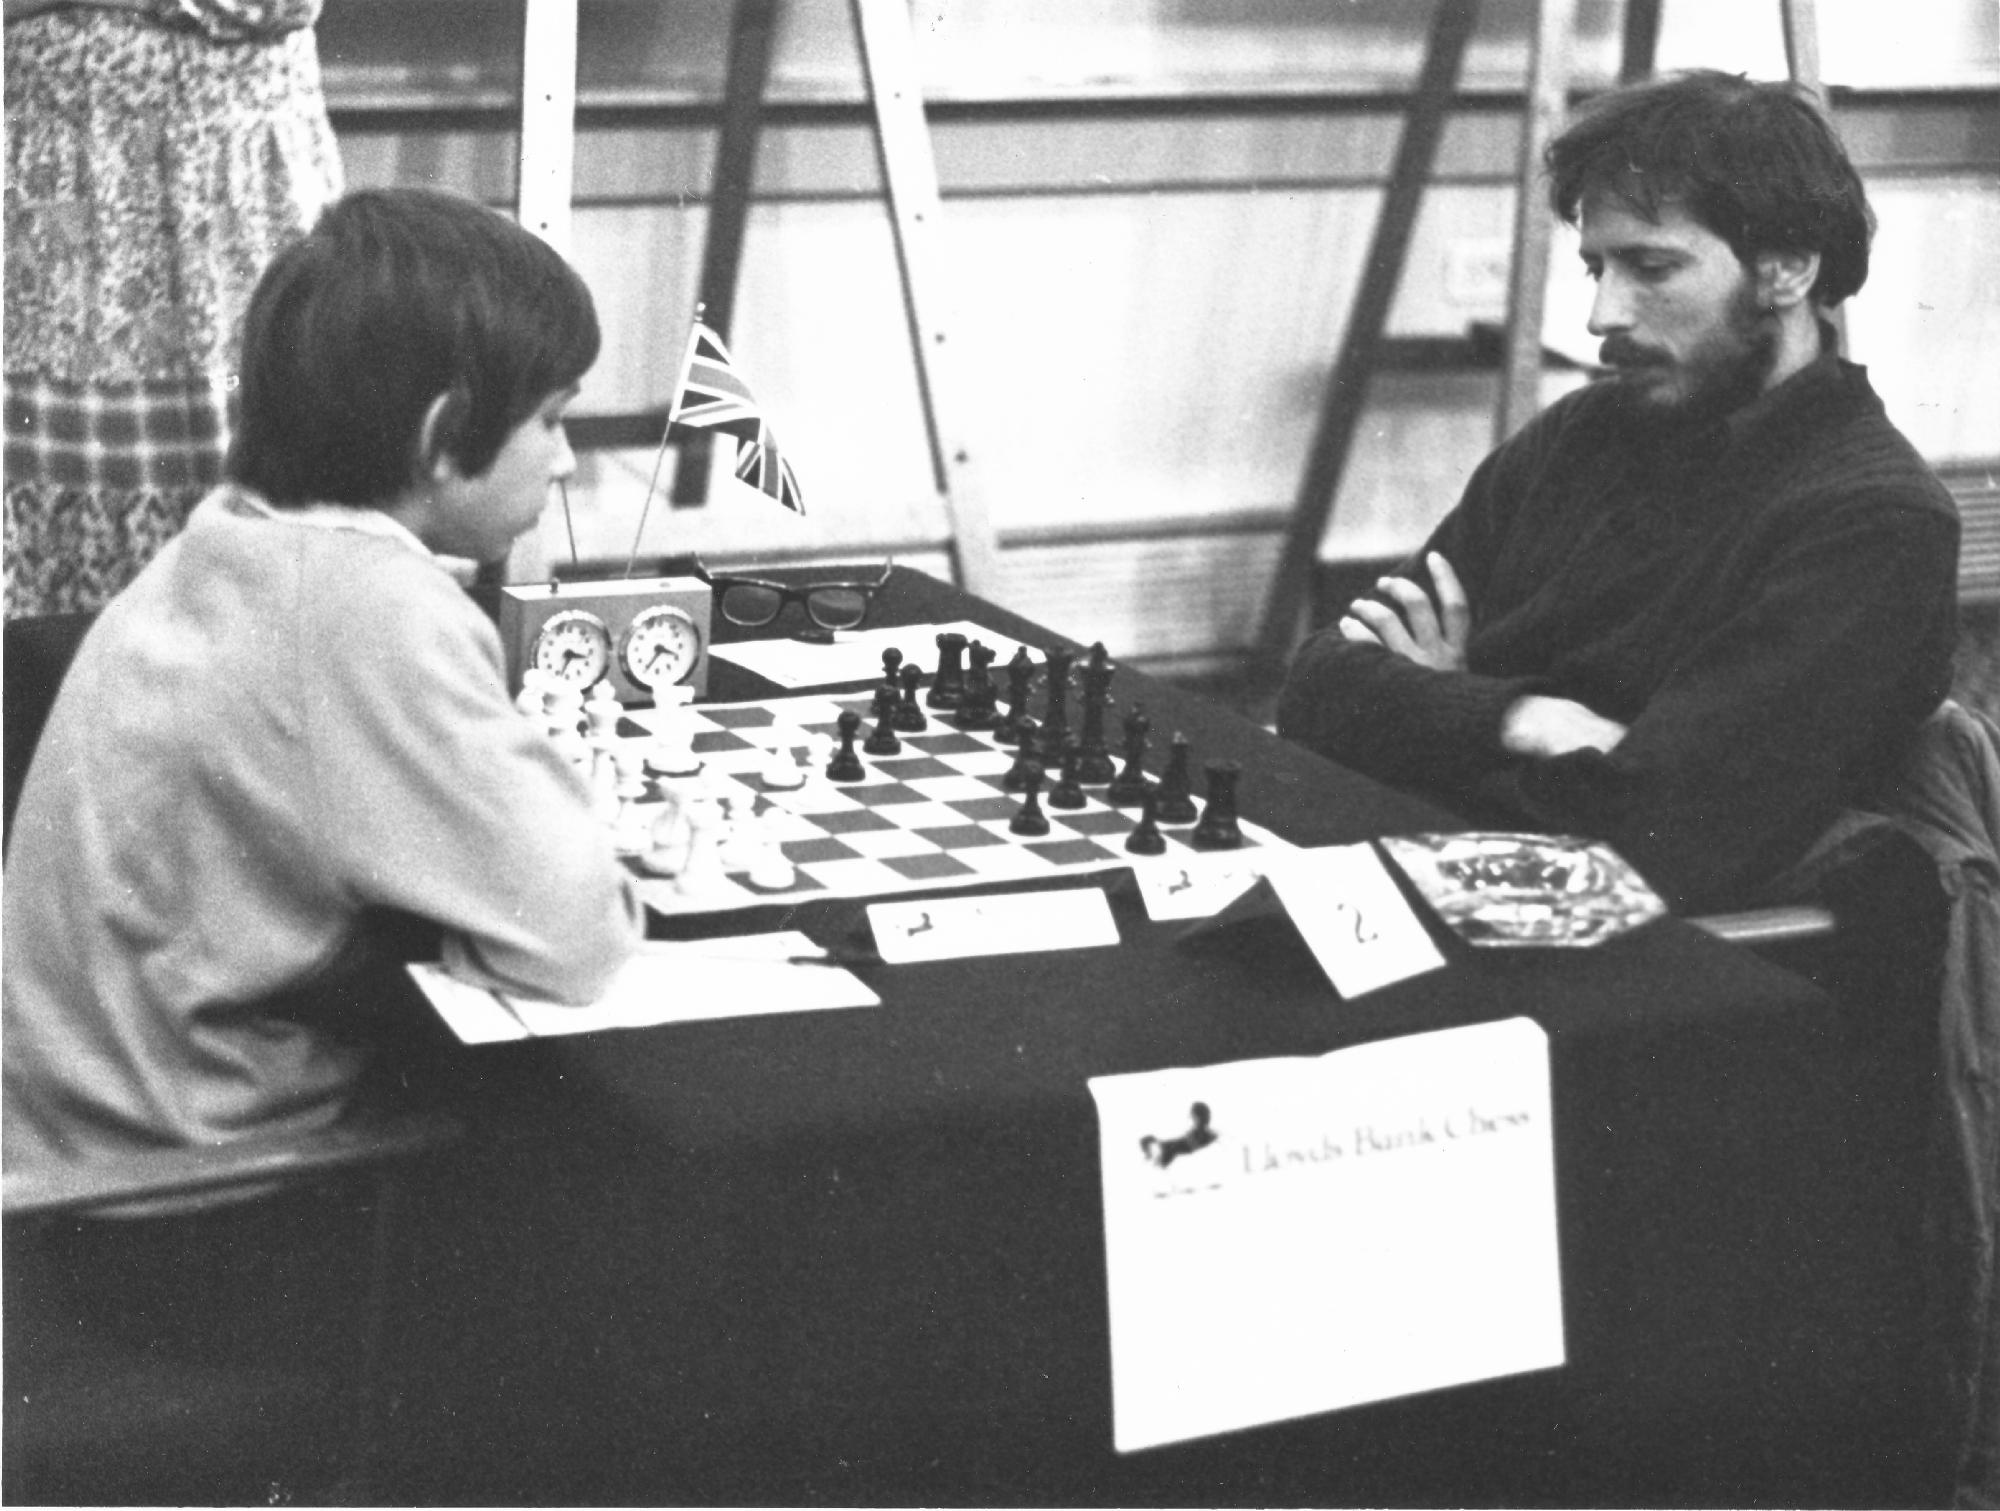 Joel Benjamin plays Mike Basman in round 2 of the 1978 Lloyds Bank Open